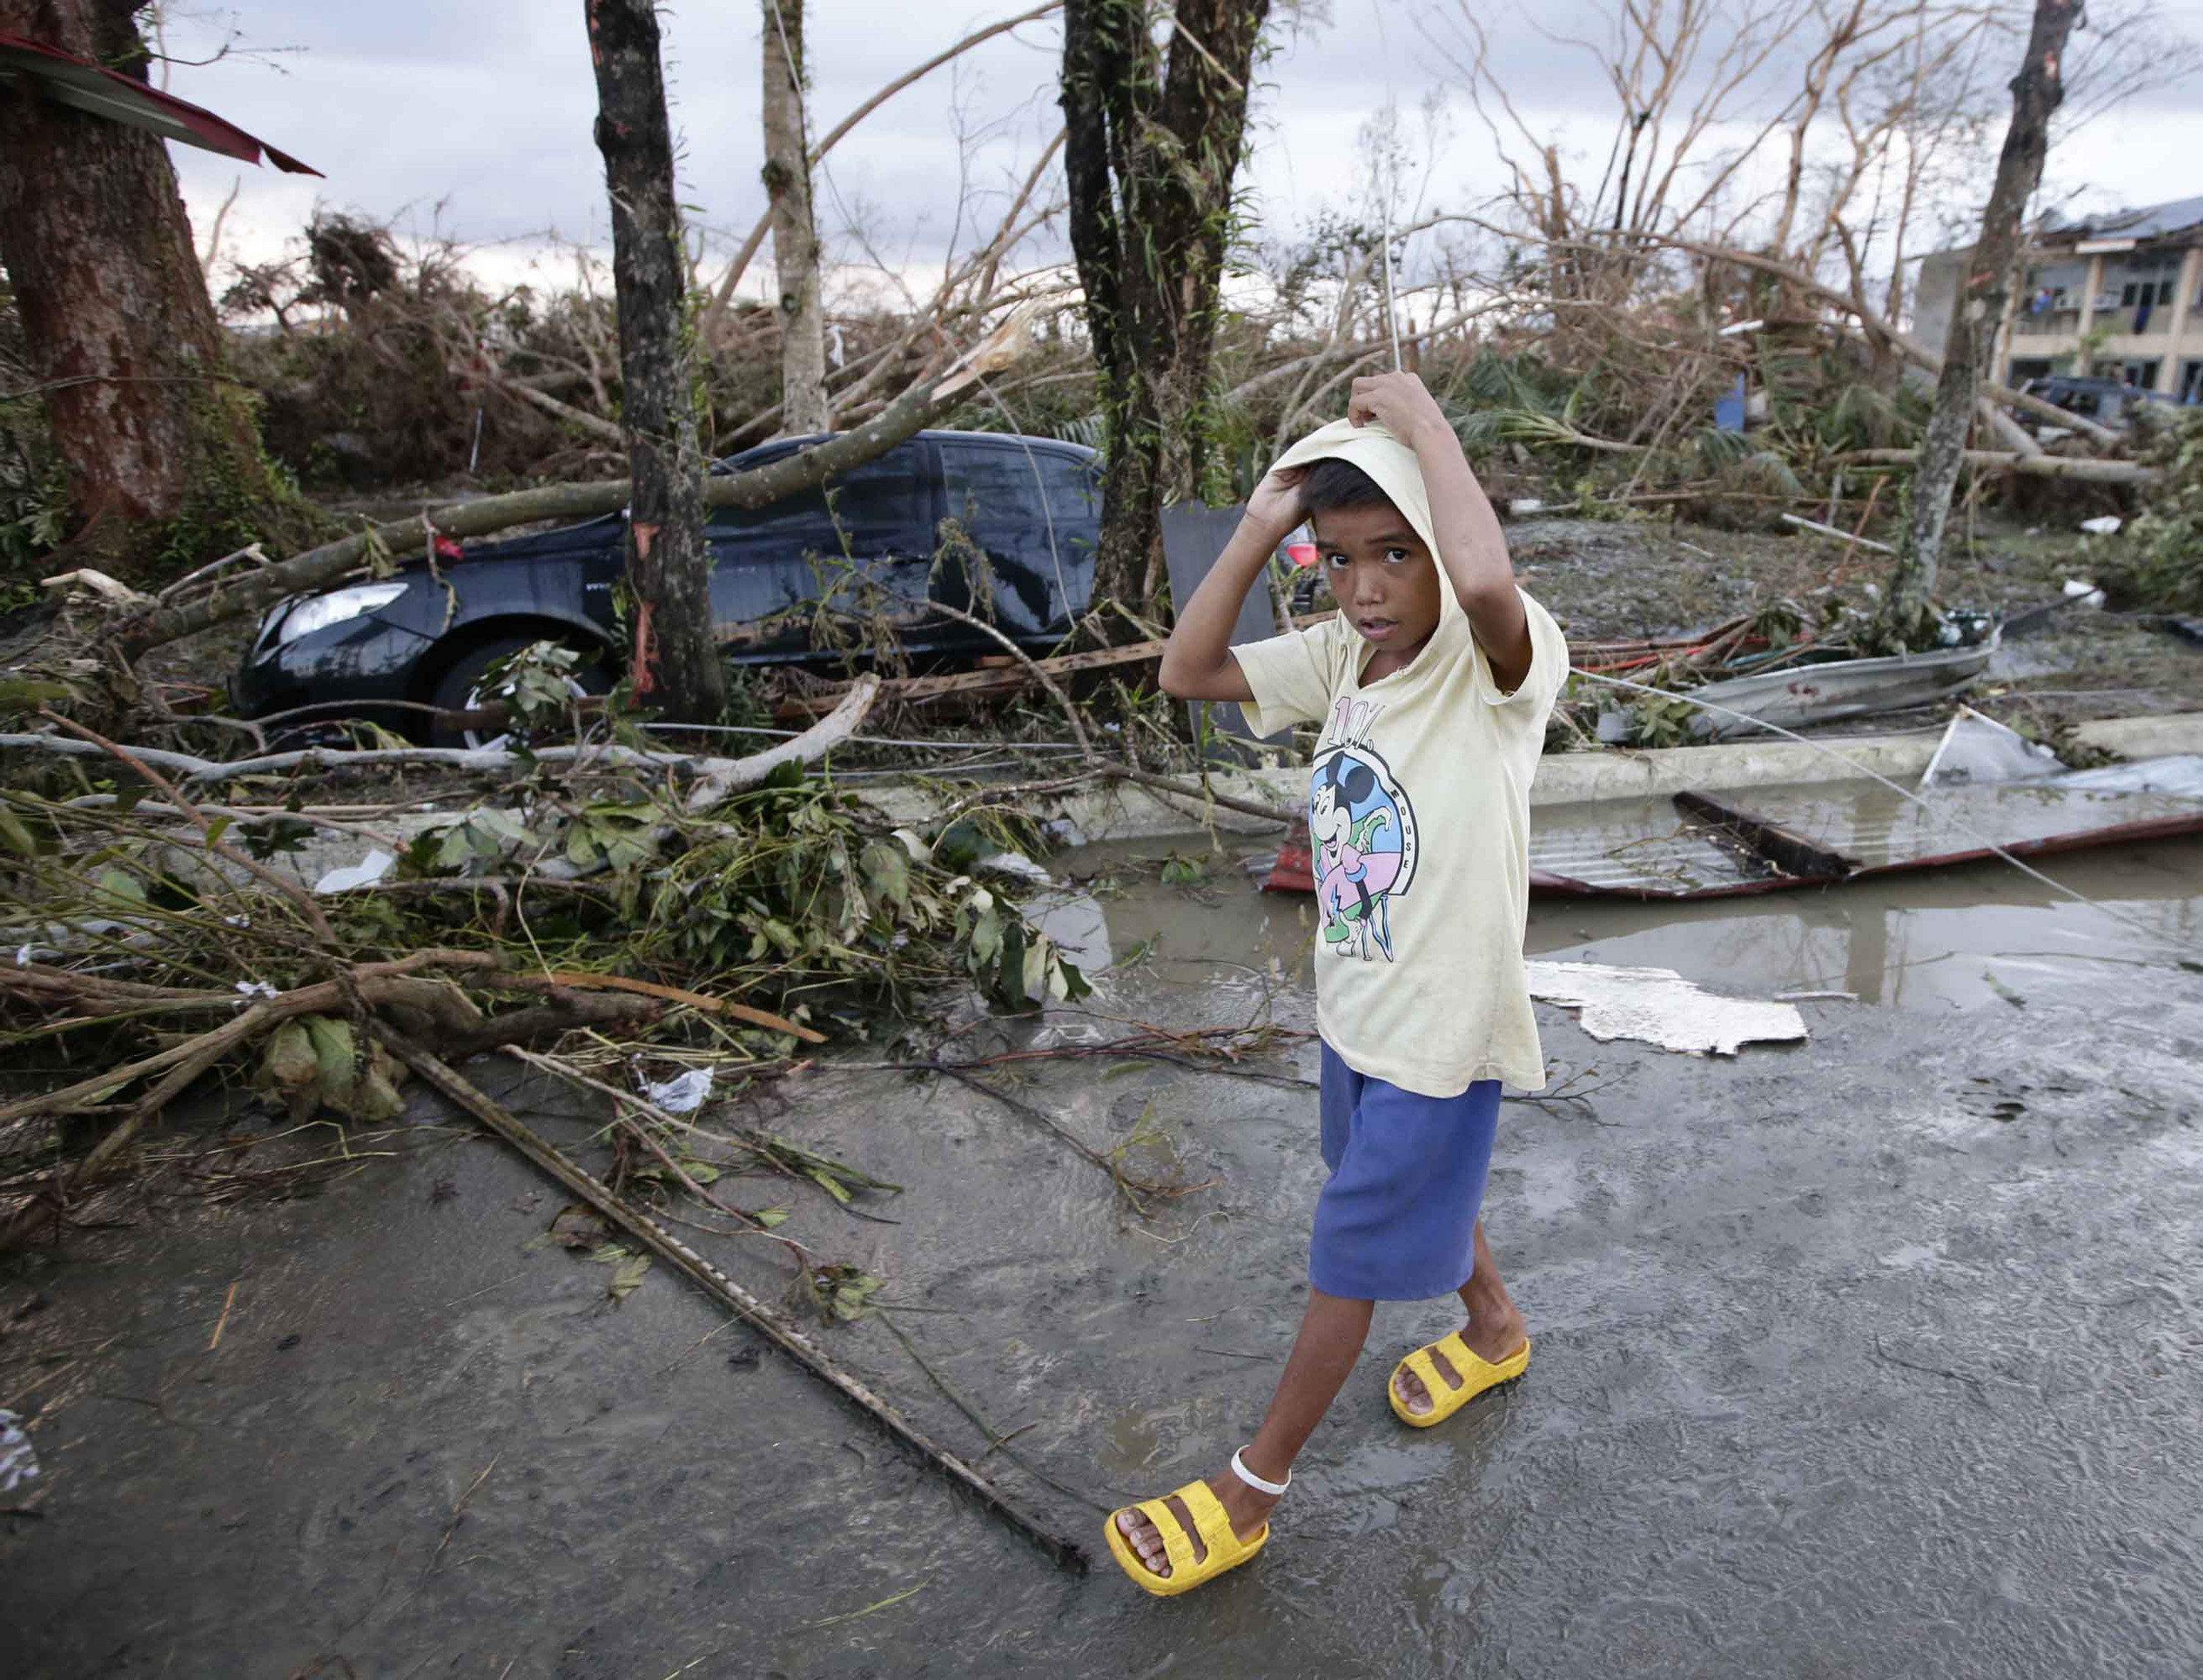 © AP Photo/Bullit Marquez. A boy in Tacloban, in the central Philippines, walks past the devastation brought by Typhoon Haiyan.